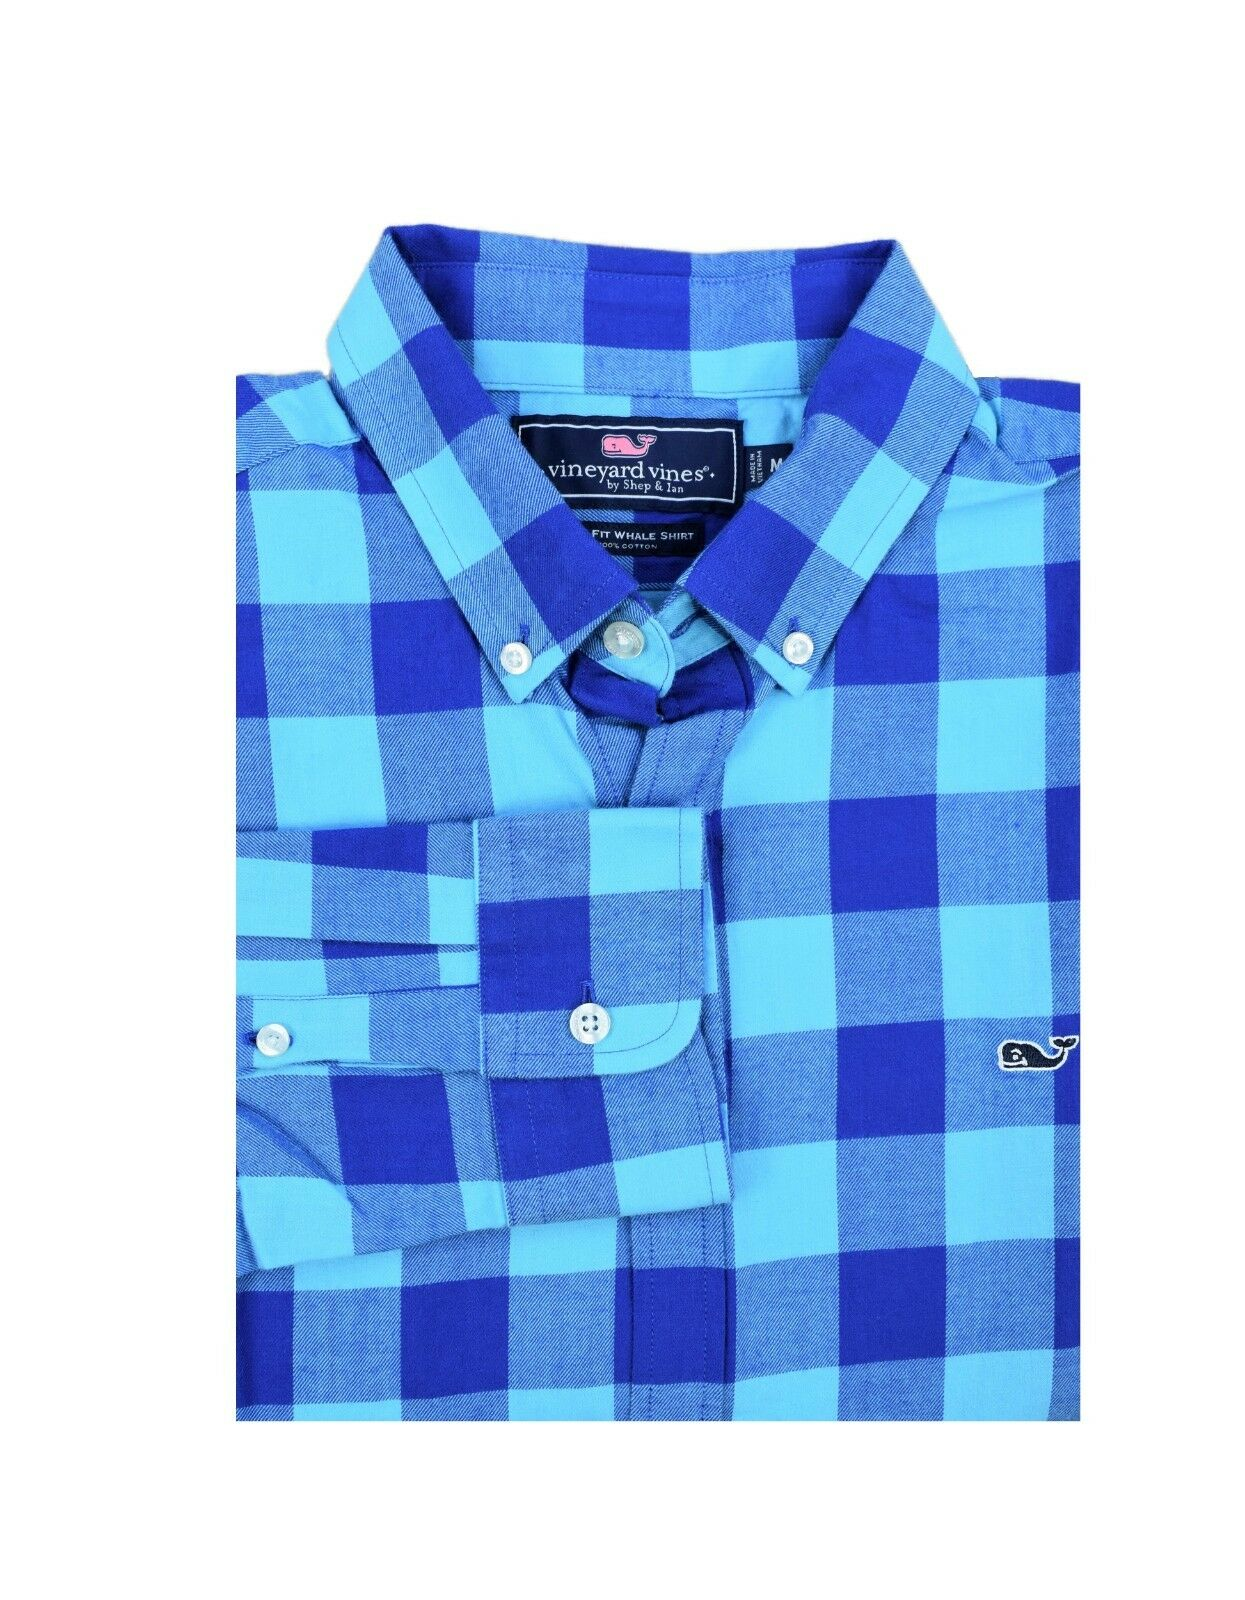 Vineyard Vines Men's Slim Fit Flannel Shirt Crepe Myrtle Check in Turquoise